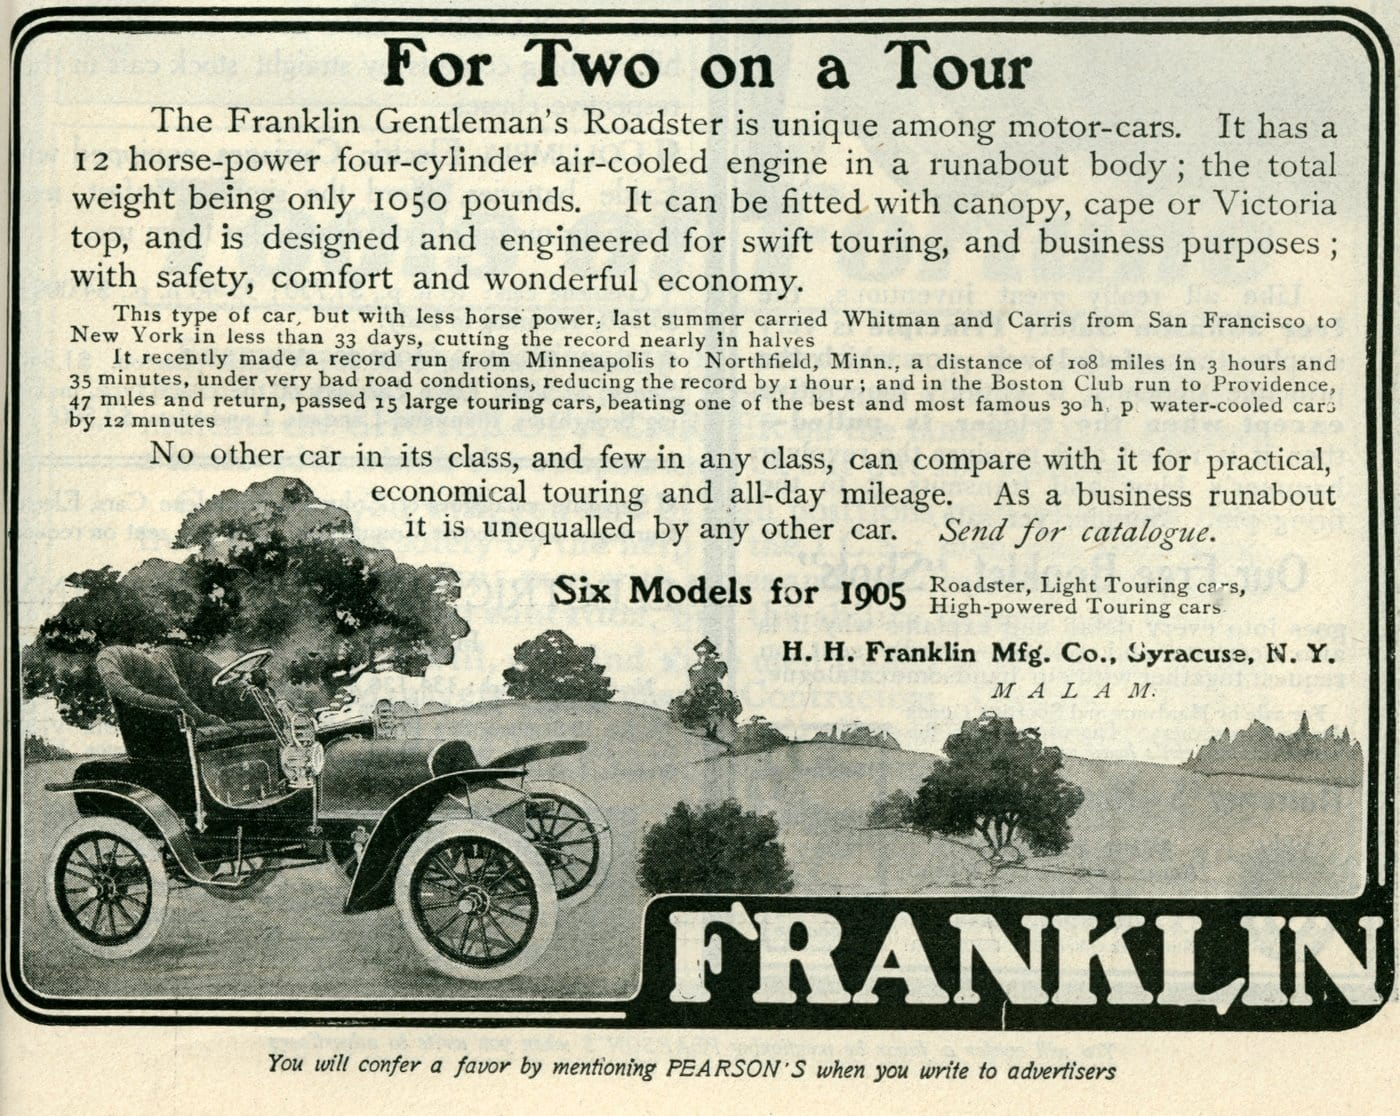 The Franklin Gentleman's Roadster motor-car (1905)